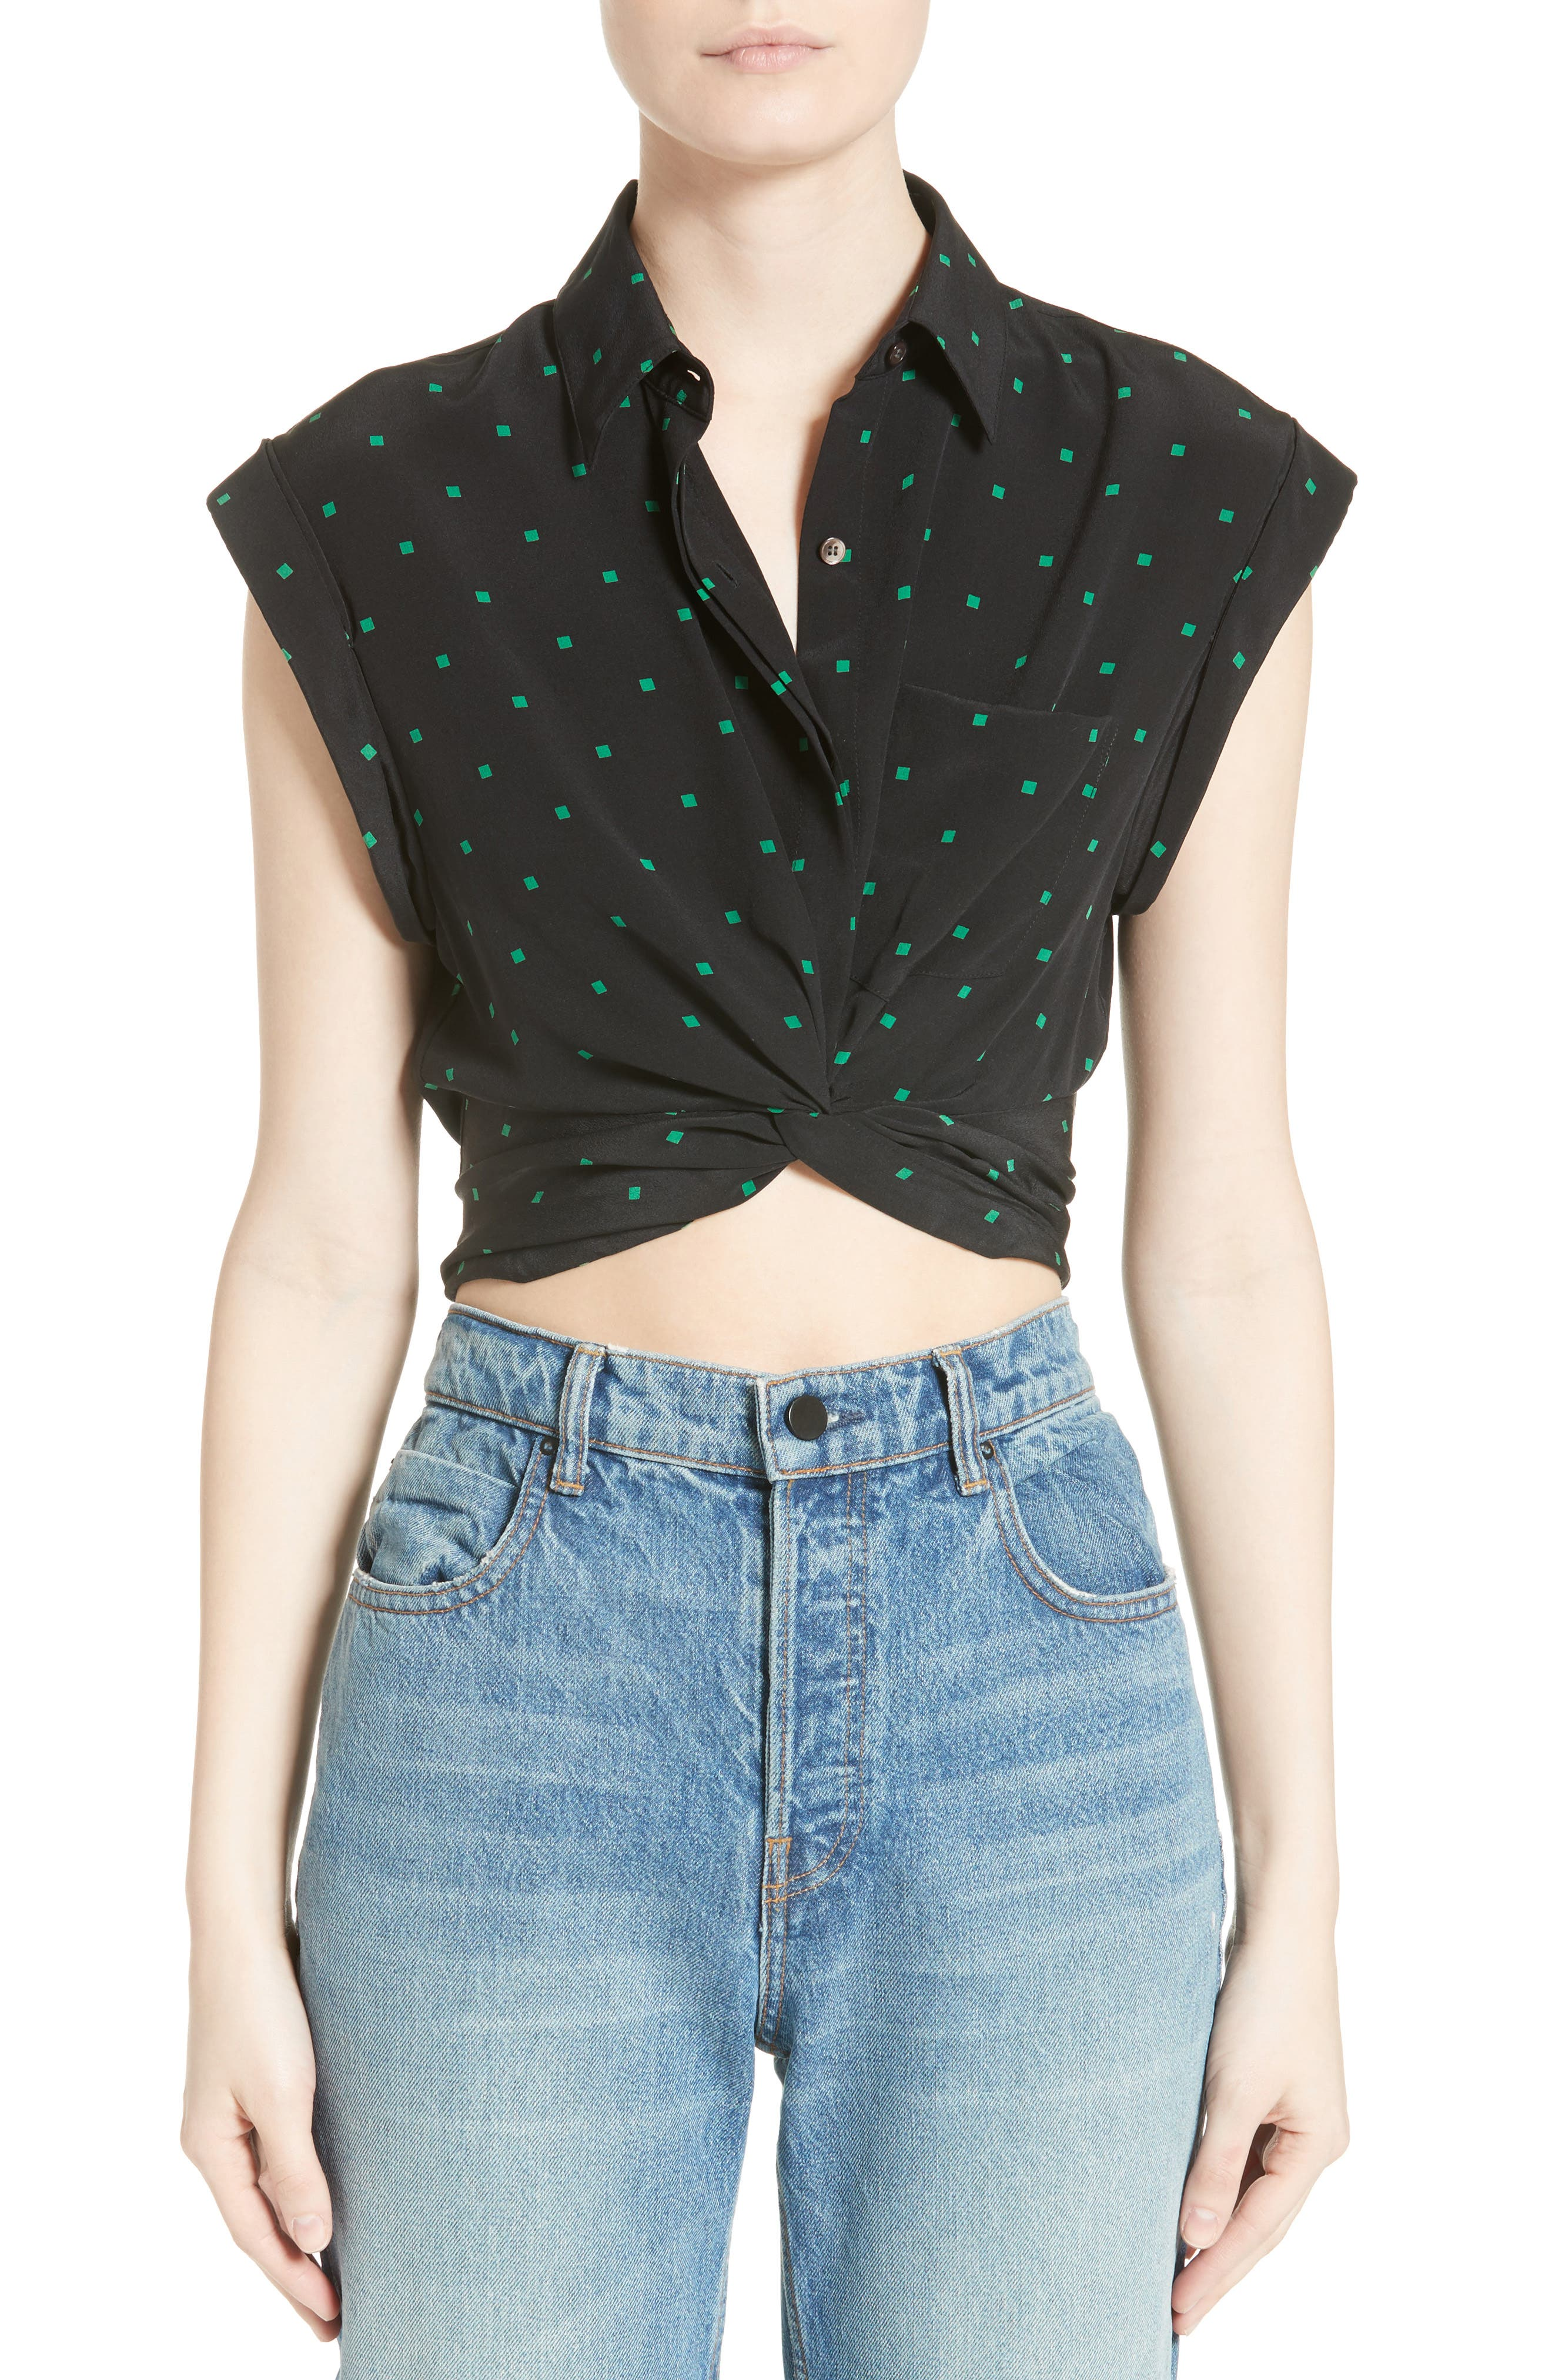 Knotted Print Silk Crop Top,                         Main,                         color, Black With Emerald Print